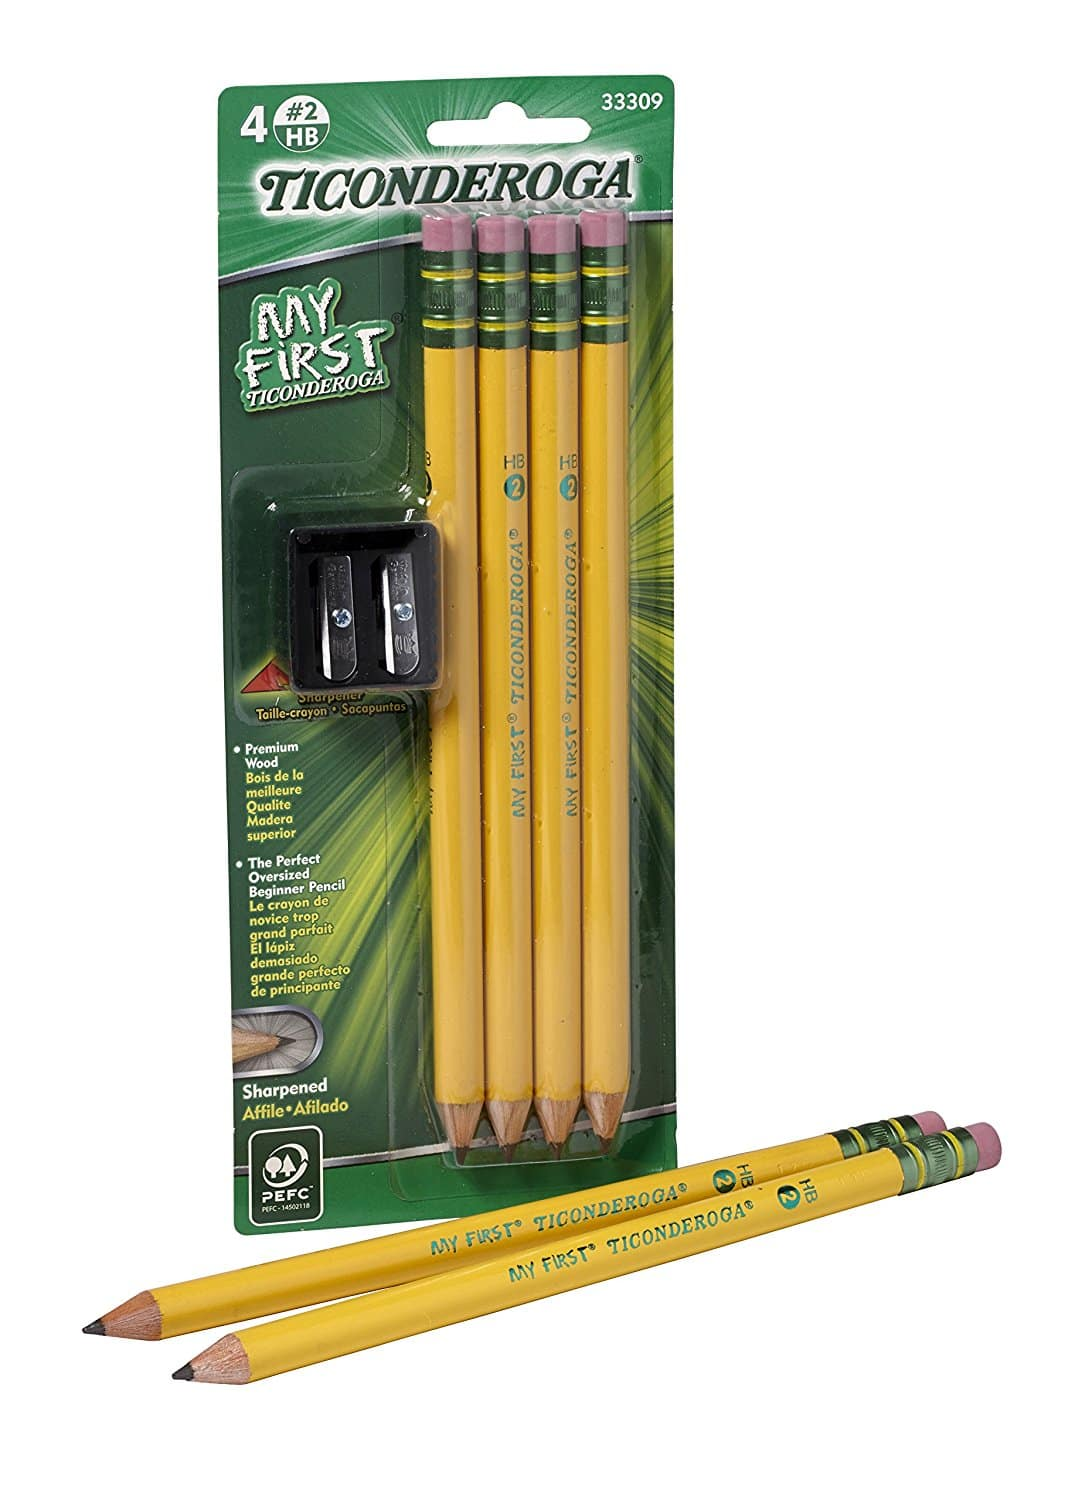 $1.42 shipped My First Ticonderoga Primary Size #2 Beginner Pencils, Pre-Sharpened, 4 Pencils with Bonus Sharpener, Yellow (33309) w/ Prime @ Amazon